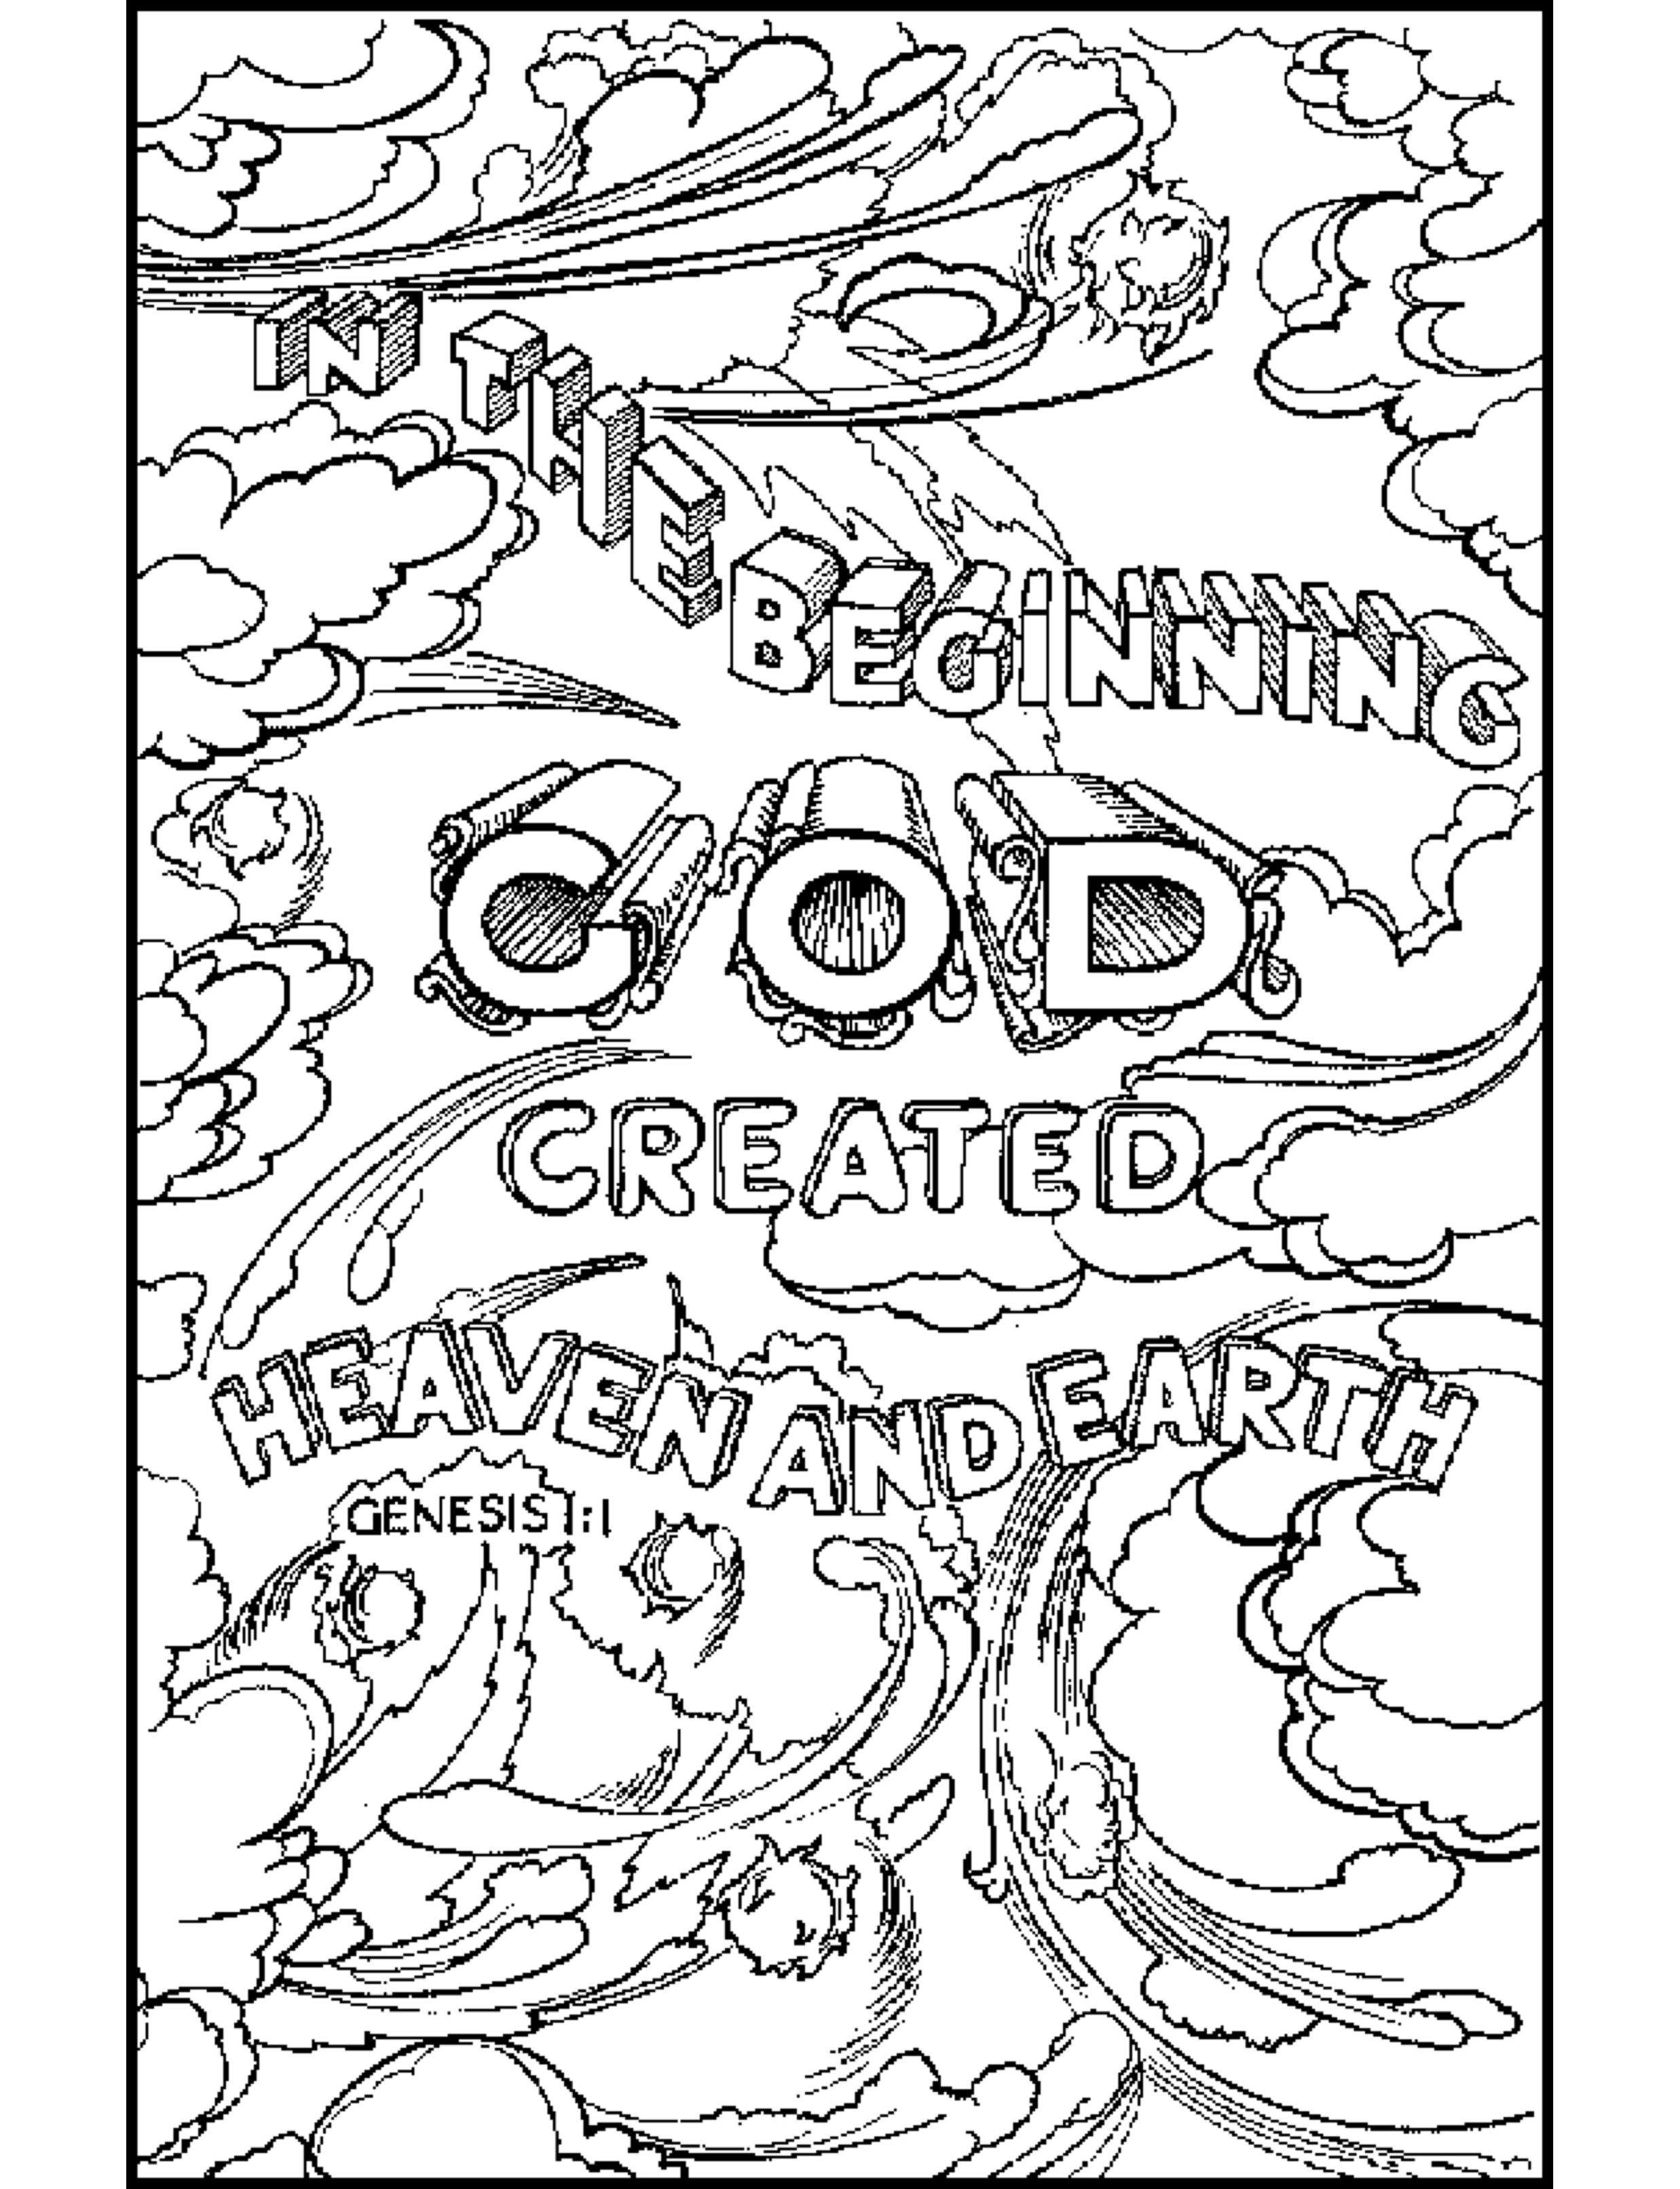 Bible Verse Coloring Pages For Kids At Getcolorings